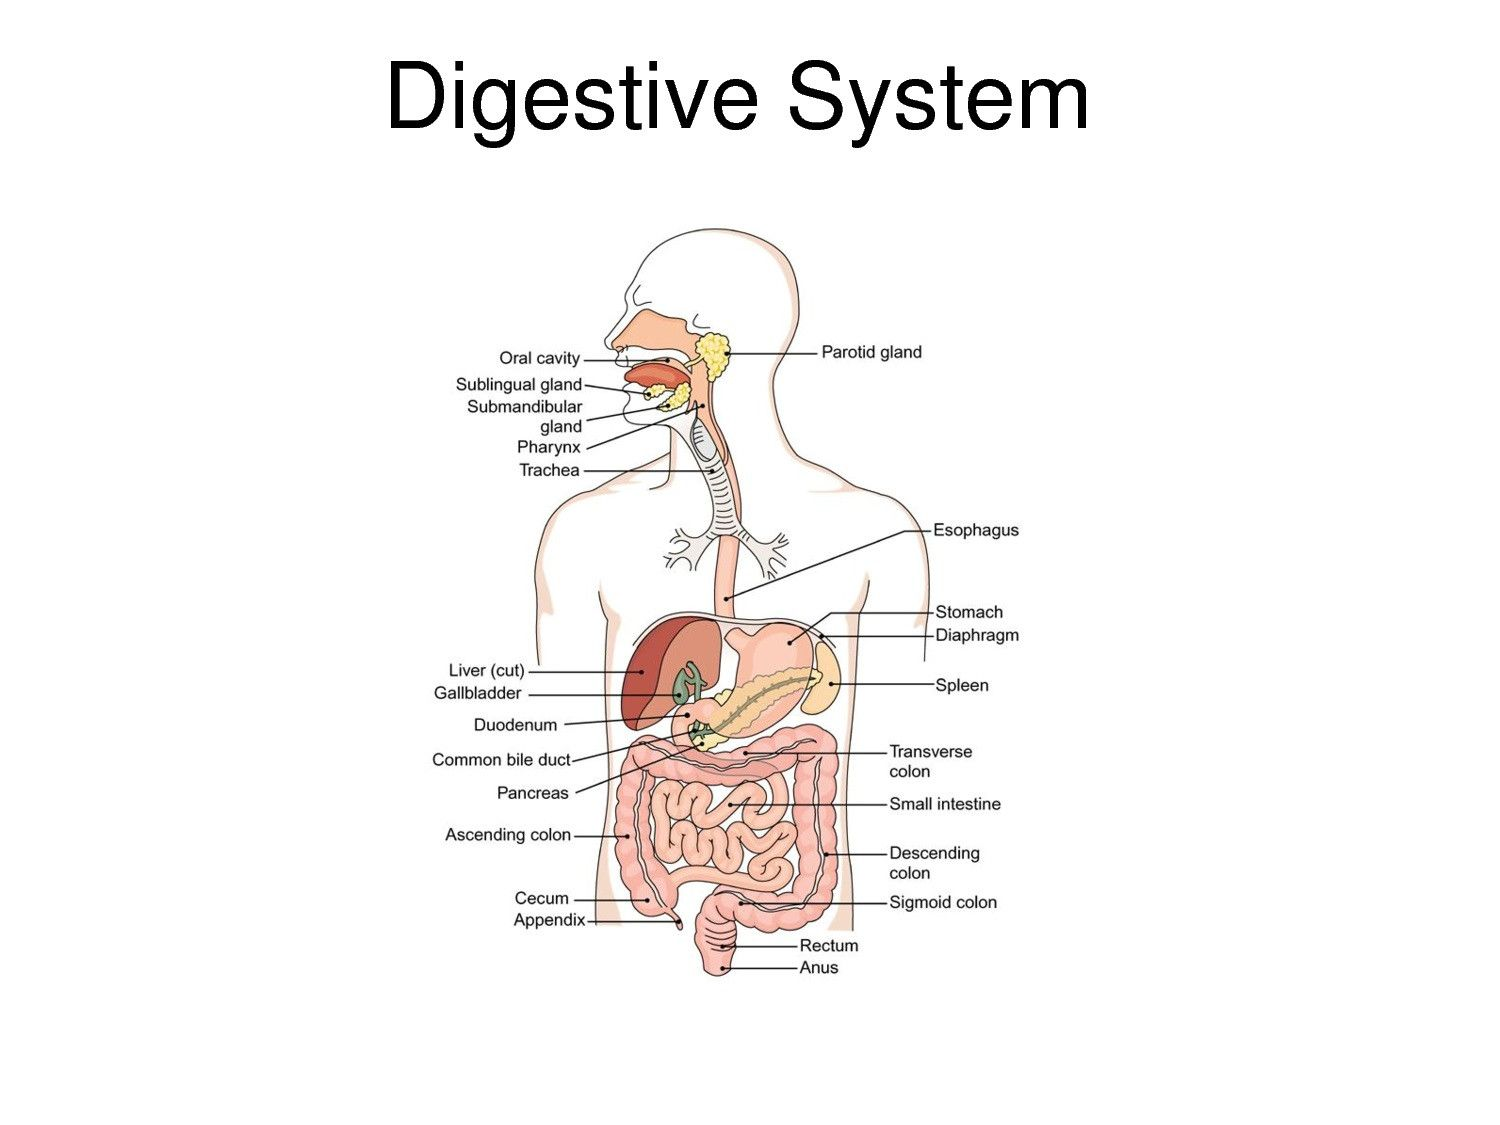 Digestive System Diagram With Labels Beautiful Digestive Tract Diagrams In 2020 Human Digestive System Digestive System Digestive System Diagram